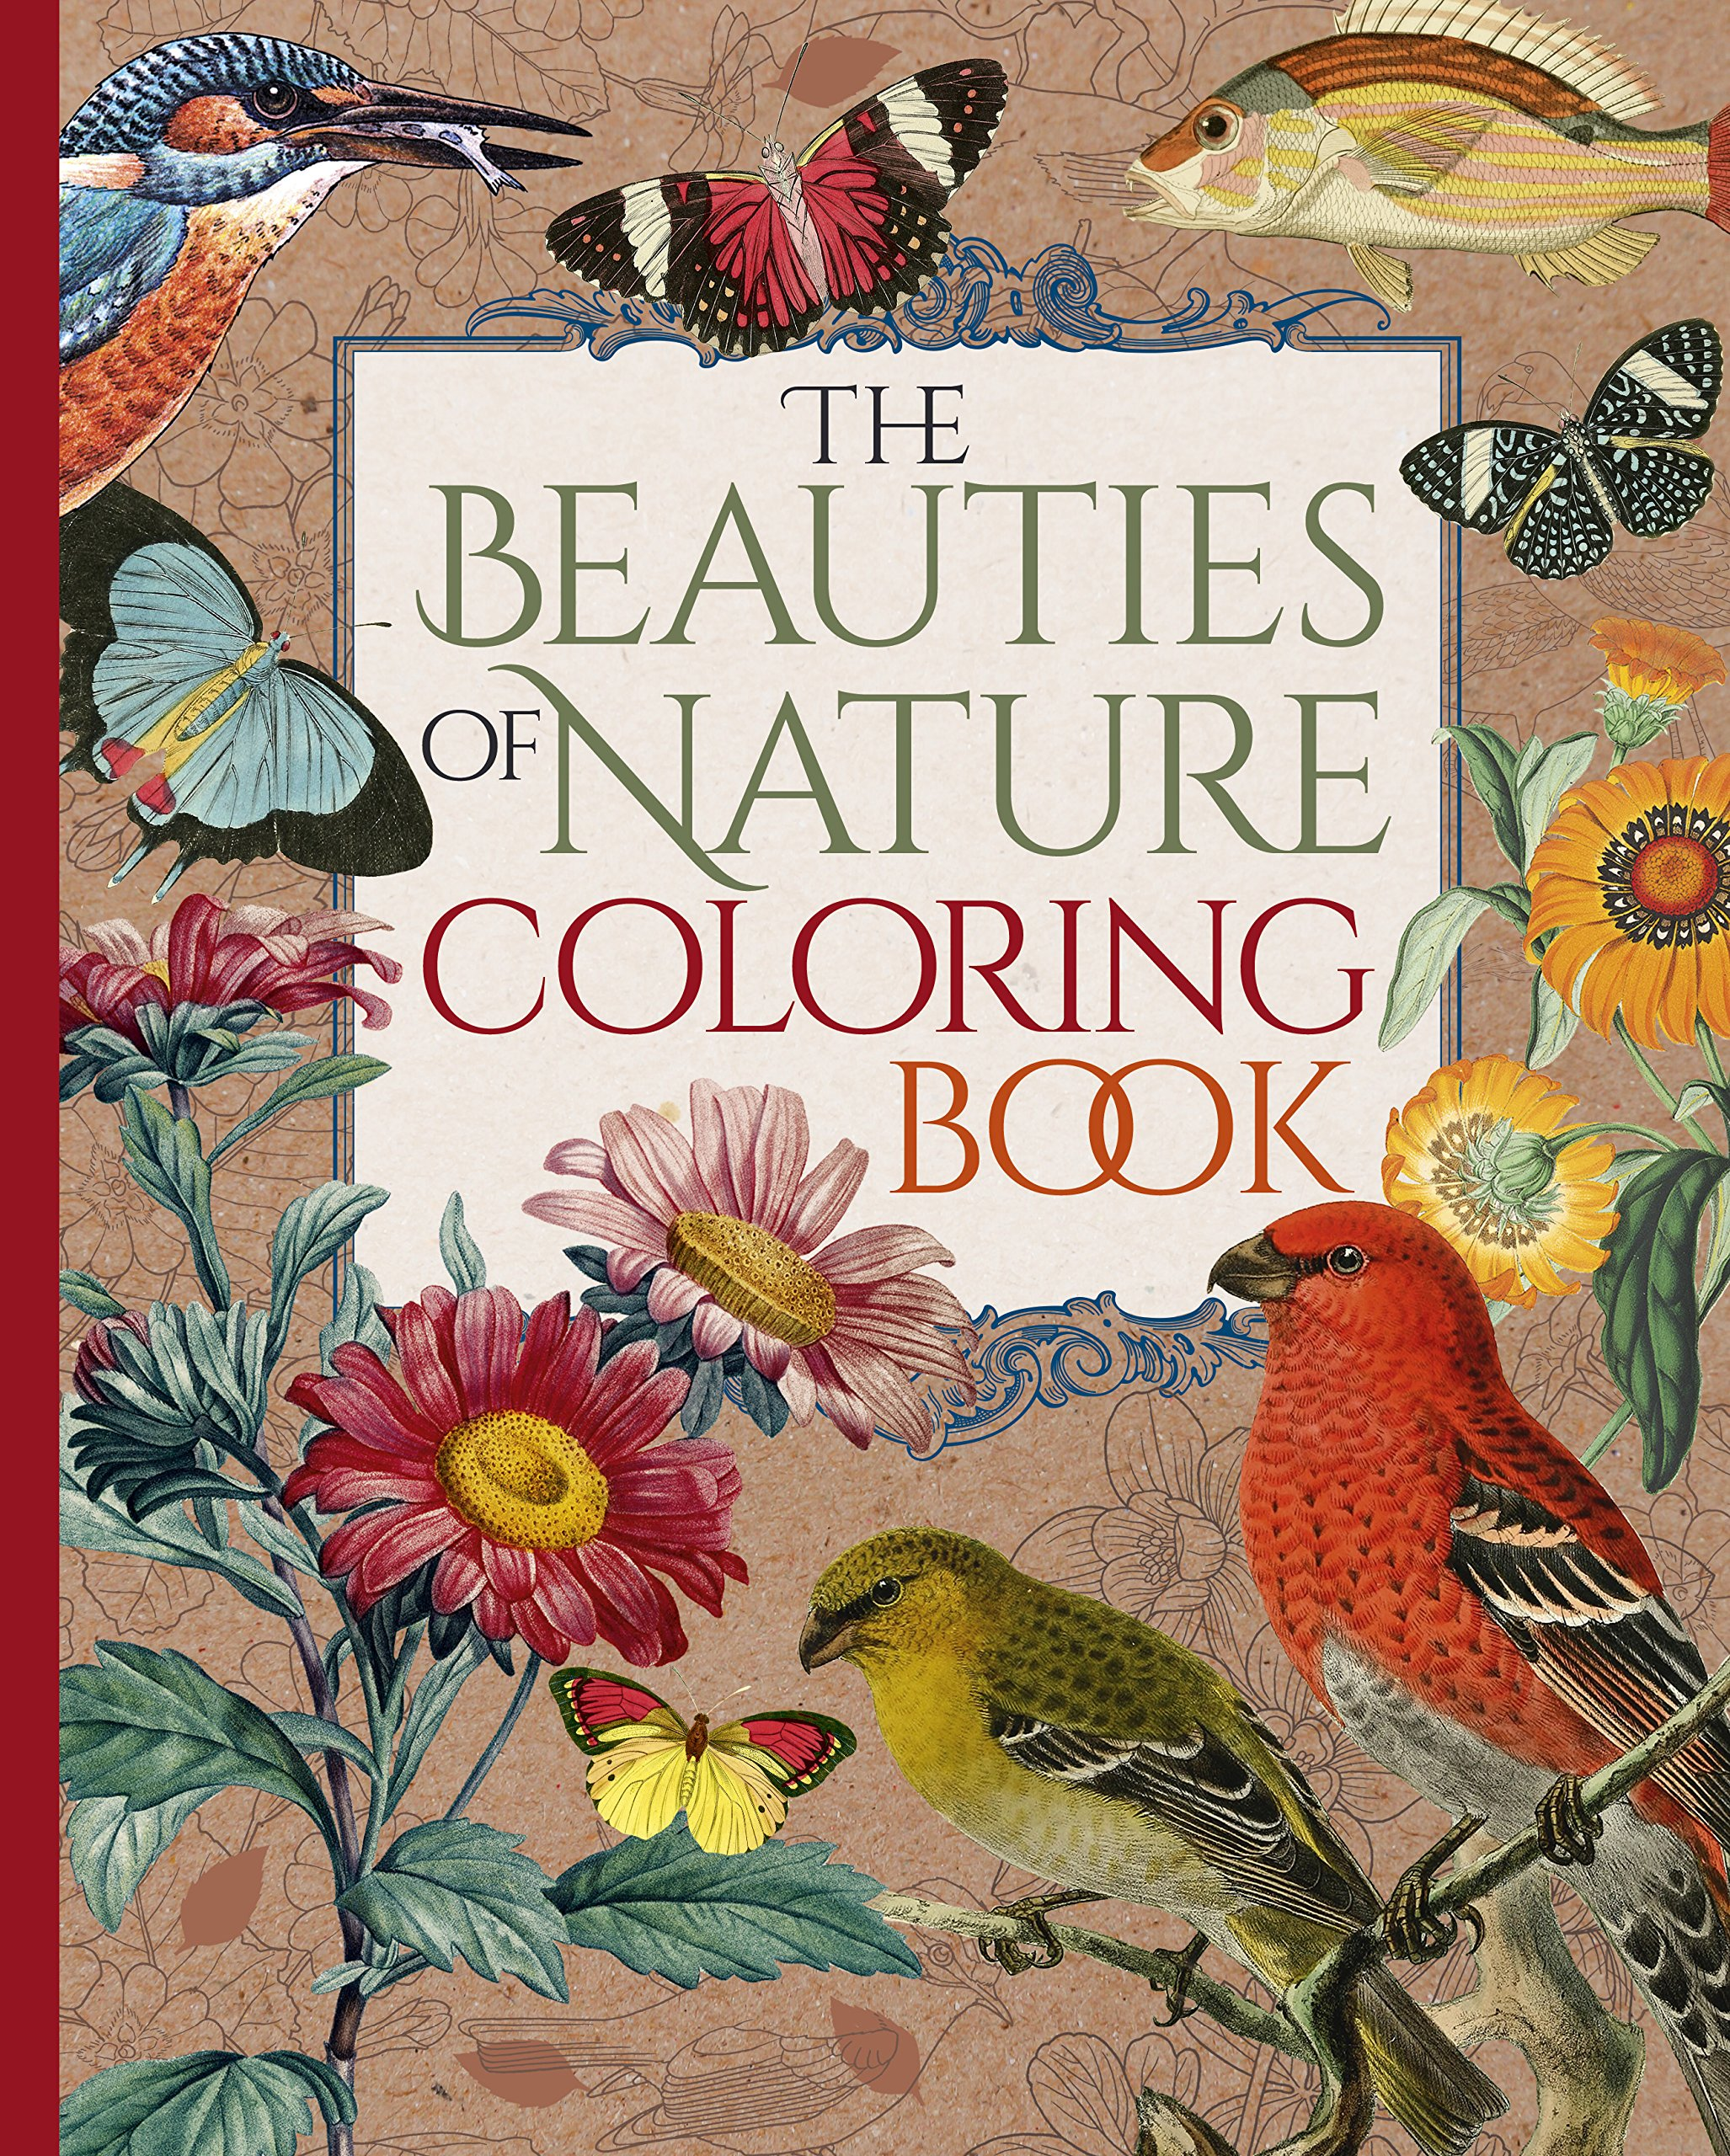 amazoncom the beauties of nature coloring book coloring flowers birds butterflies wildlife 9781785994661 pierre joseph redout - Nature Coloring Book